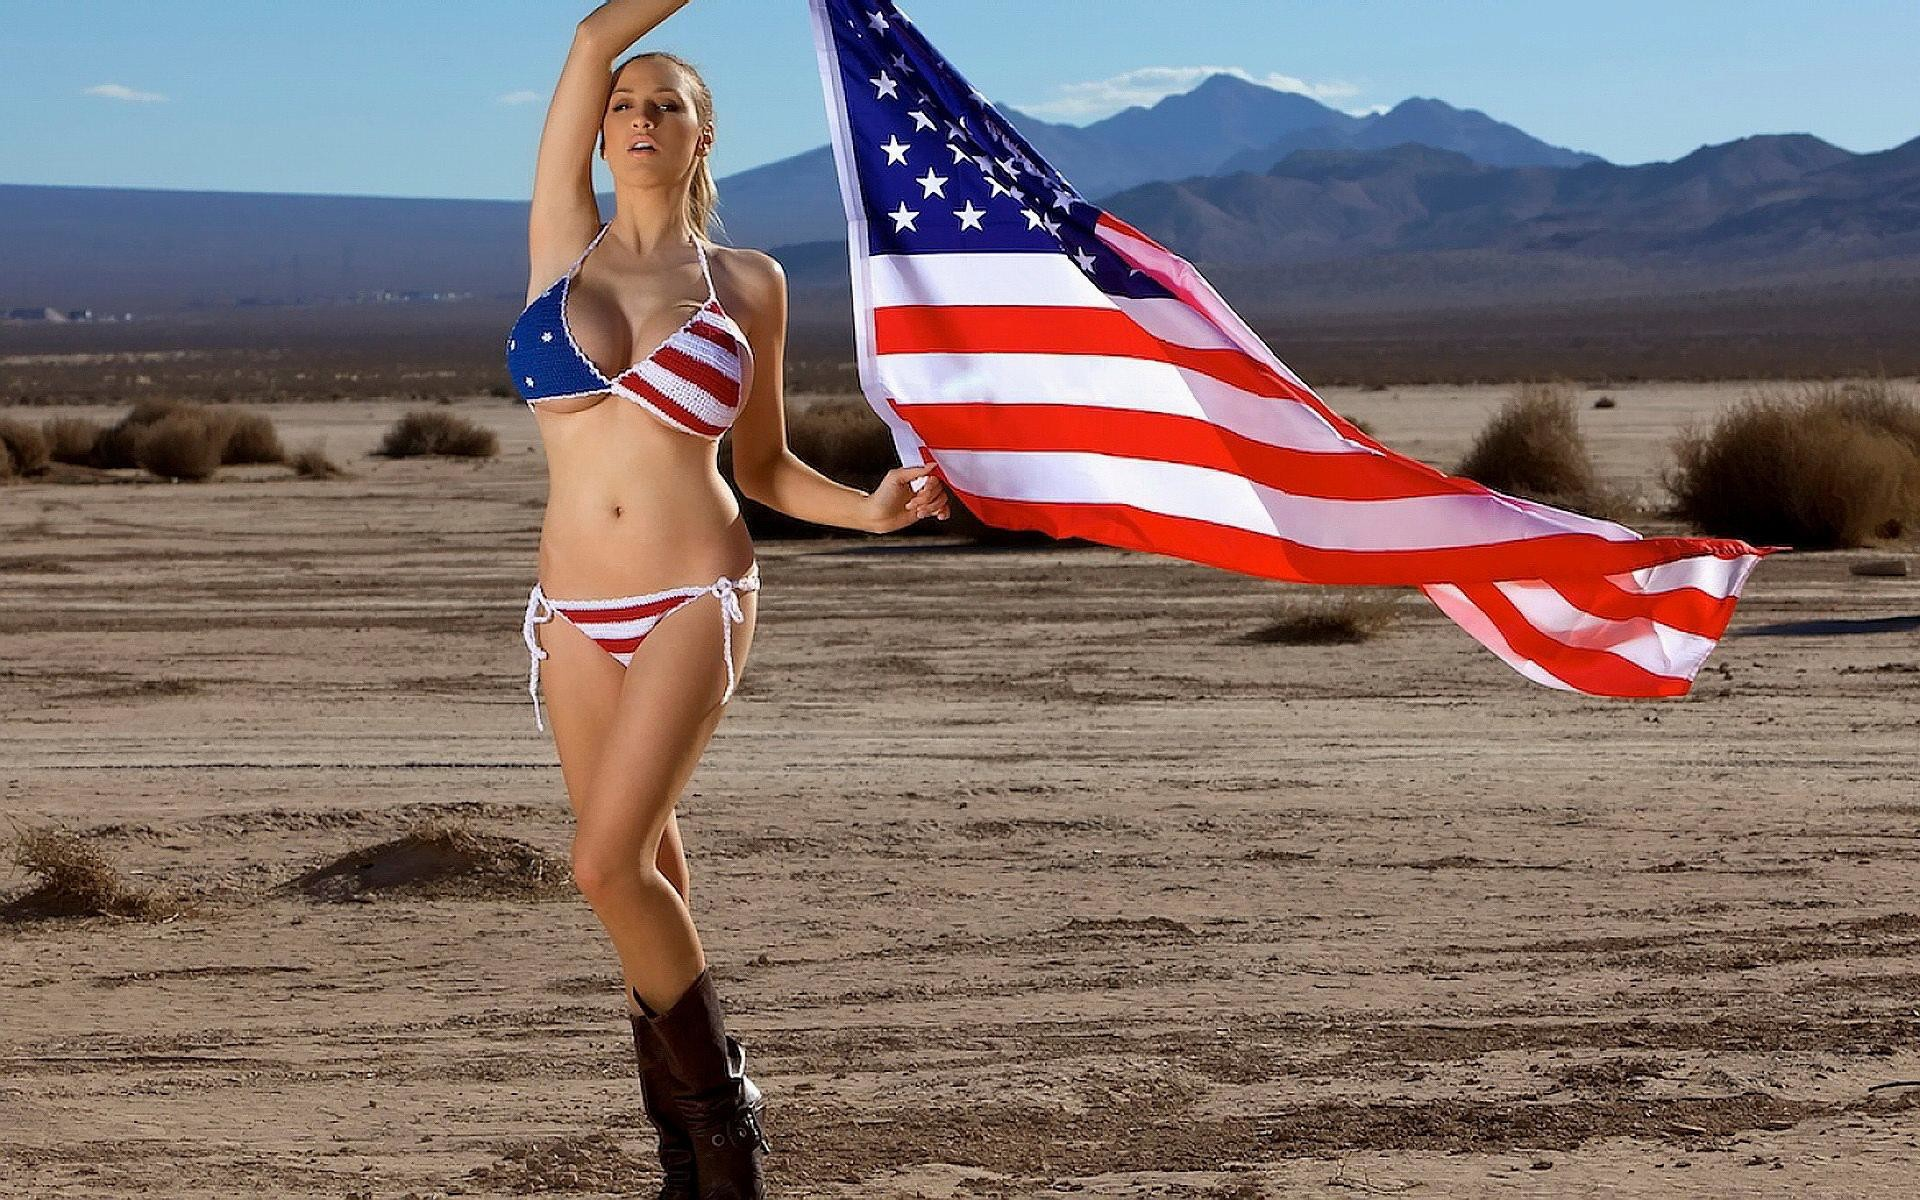 Beautiful-girl-with-american-flag-wallpaper-iphone-5